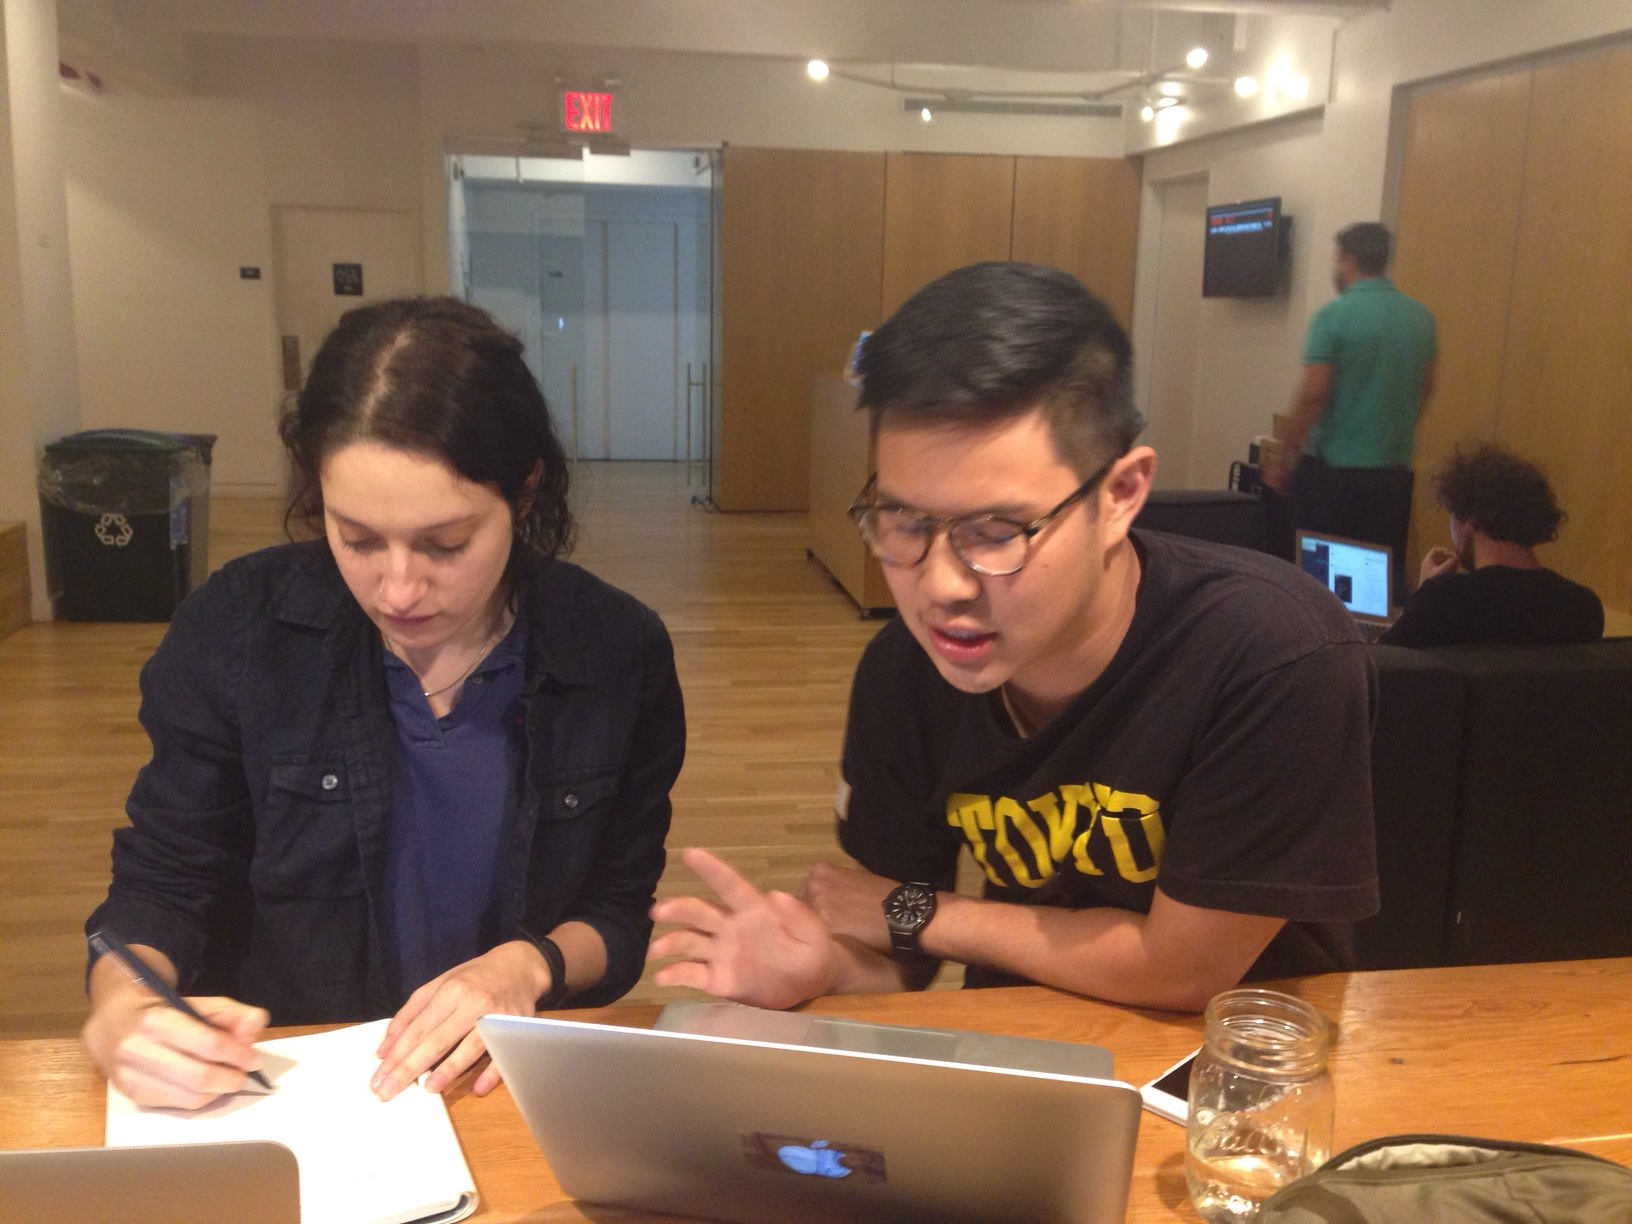 Liat conducts a usability test